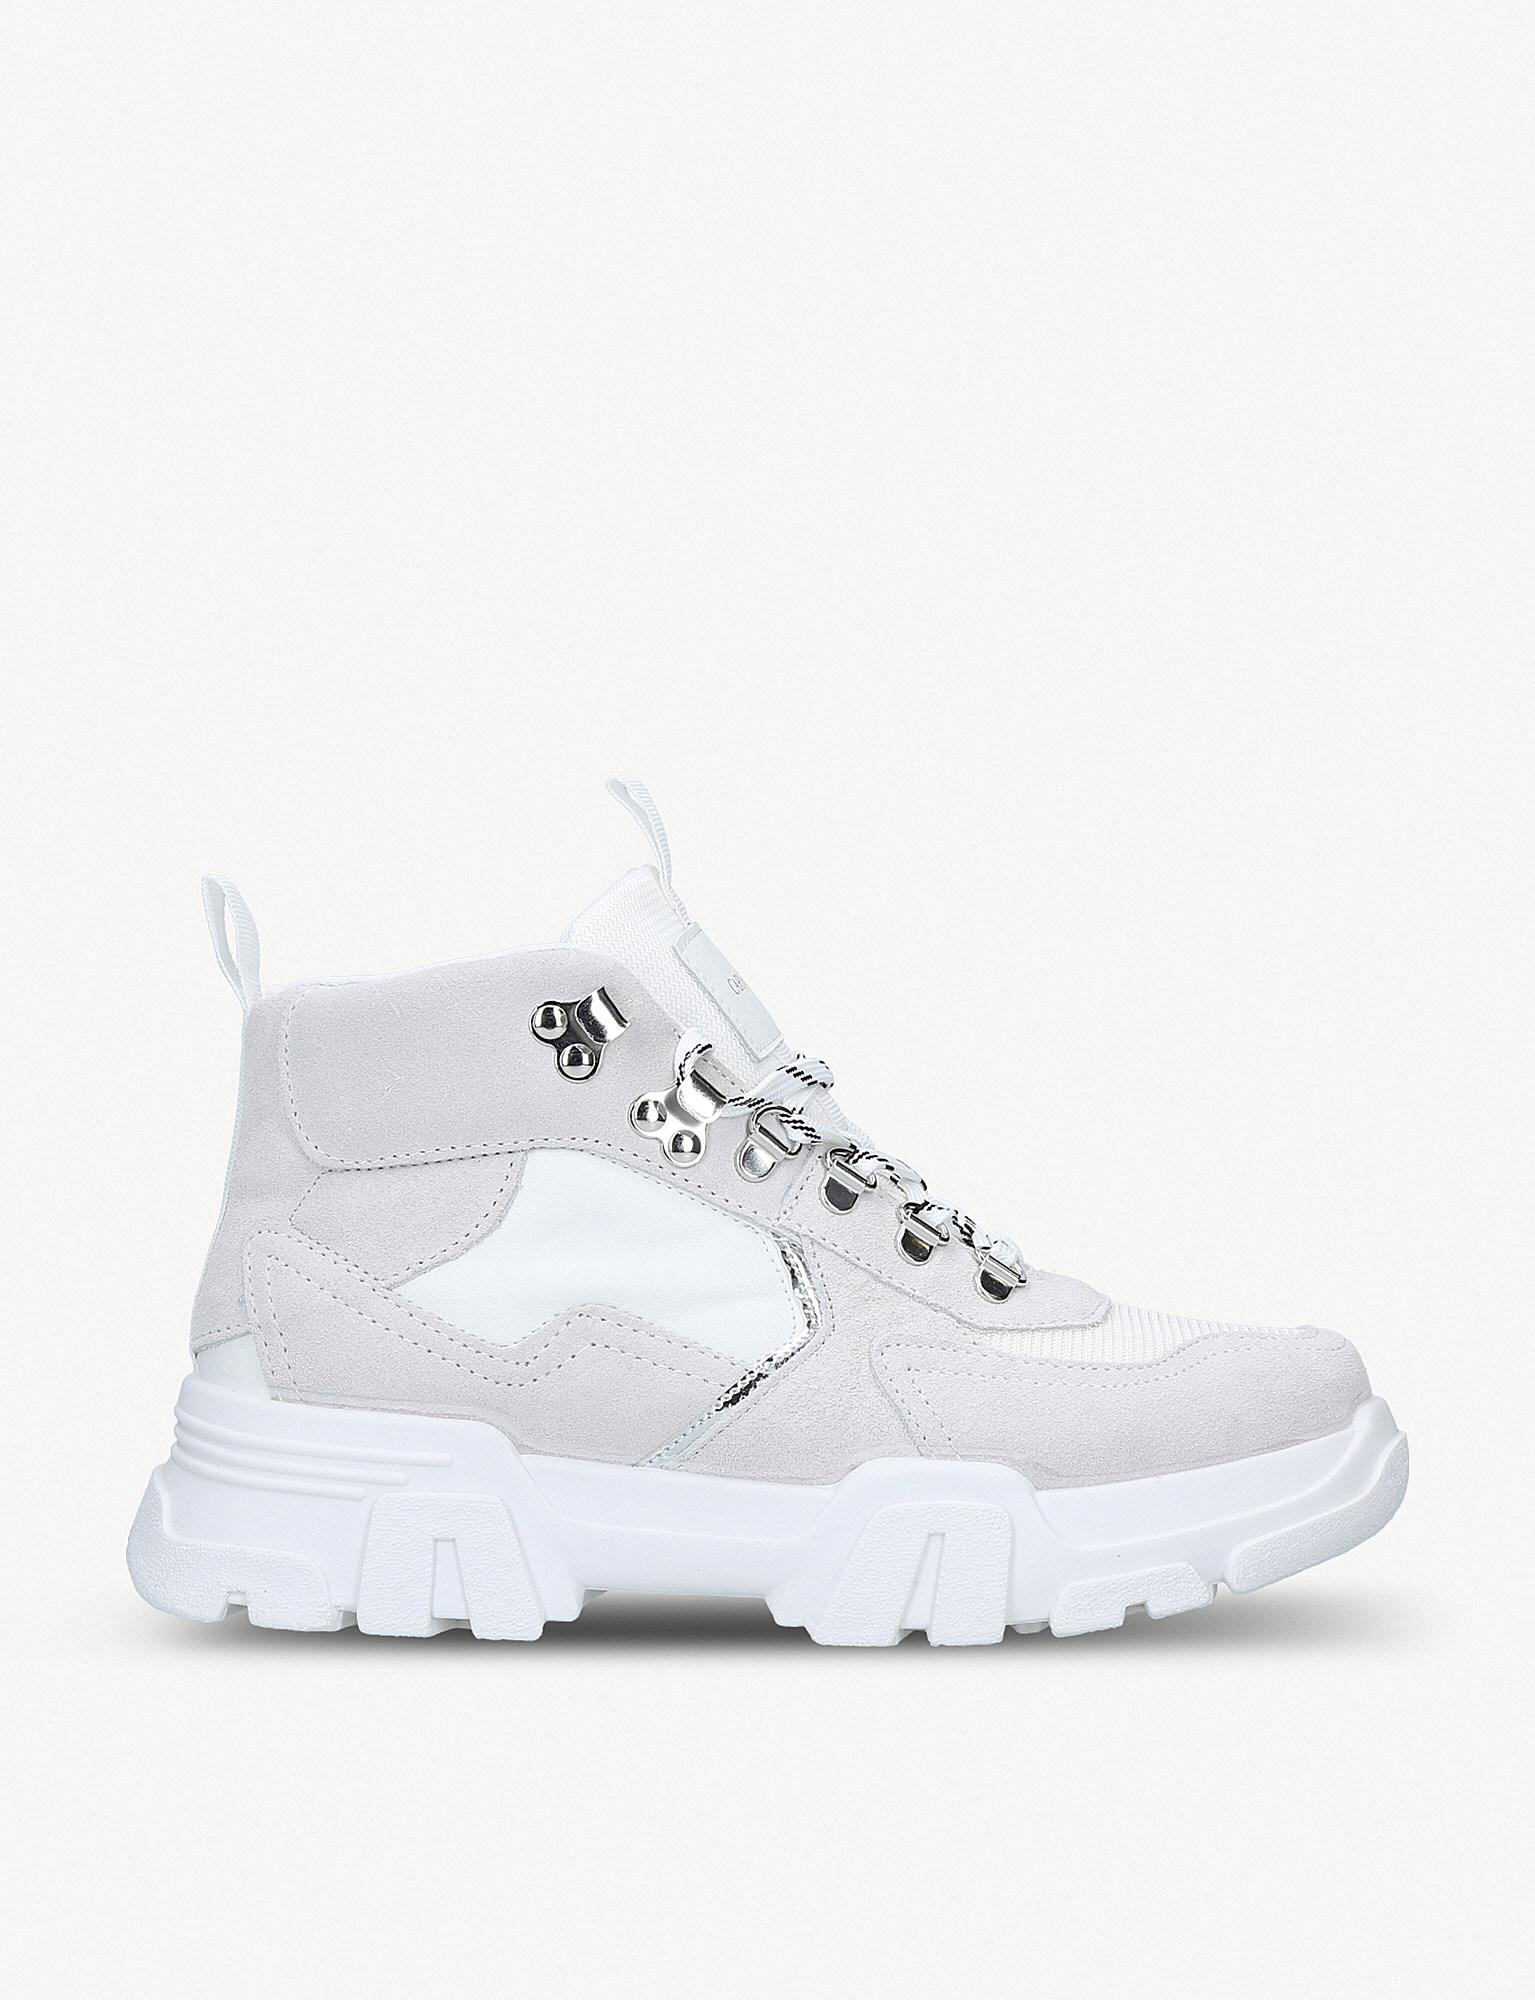 ff4d9f52c49f2 Lyst - Carvela Kurt Geiger White 'loopy' Suede High Top Trainers in ...